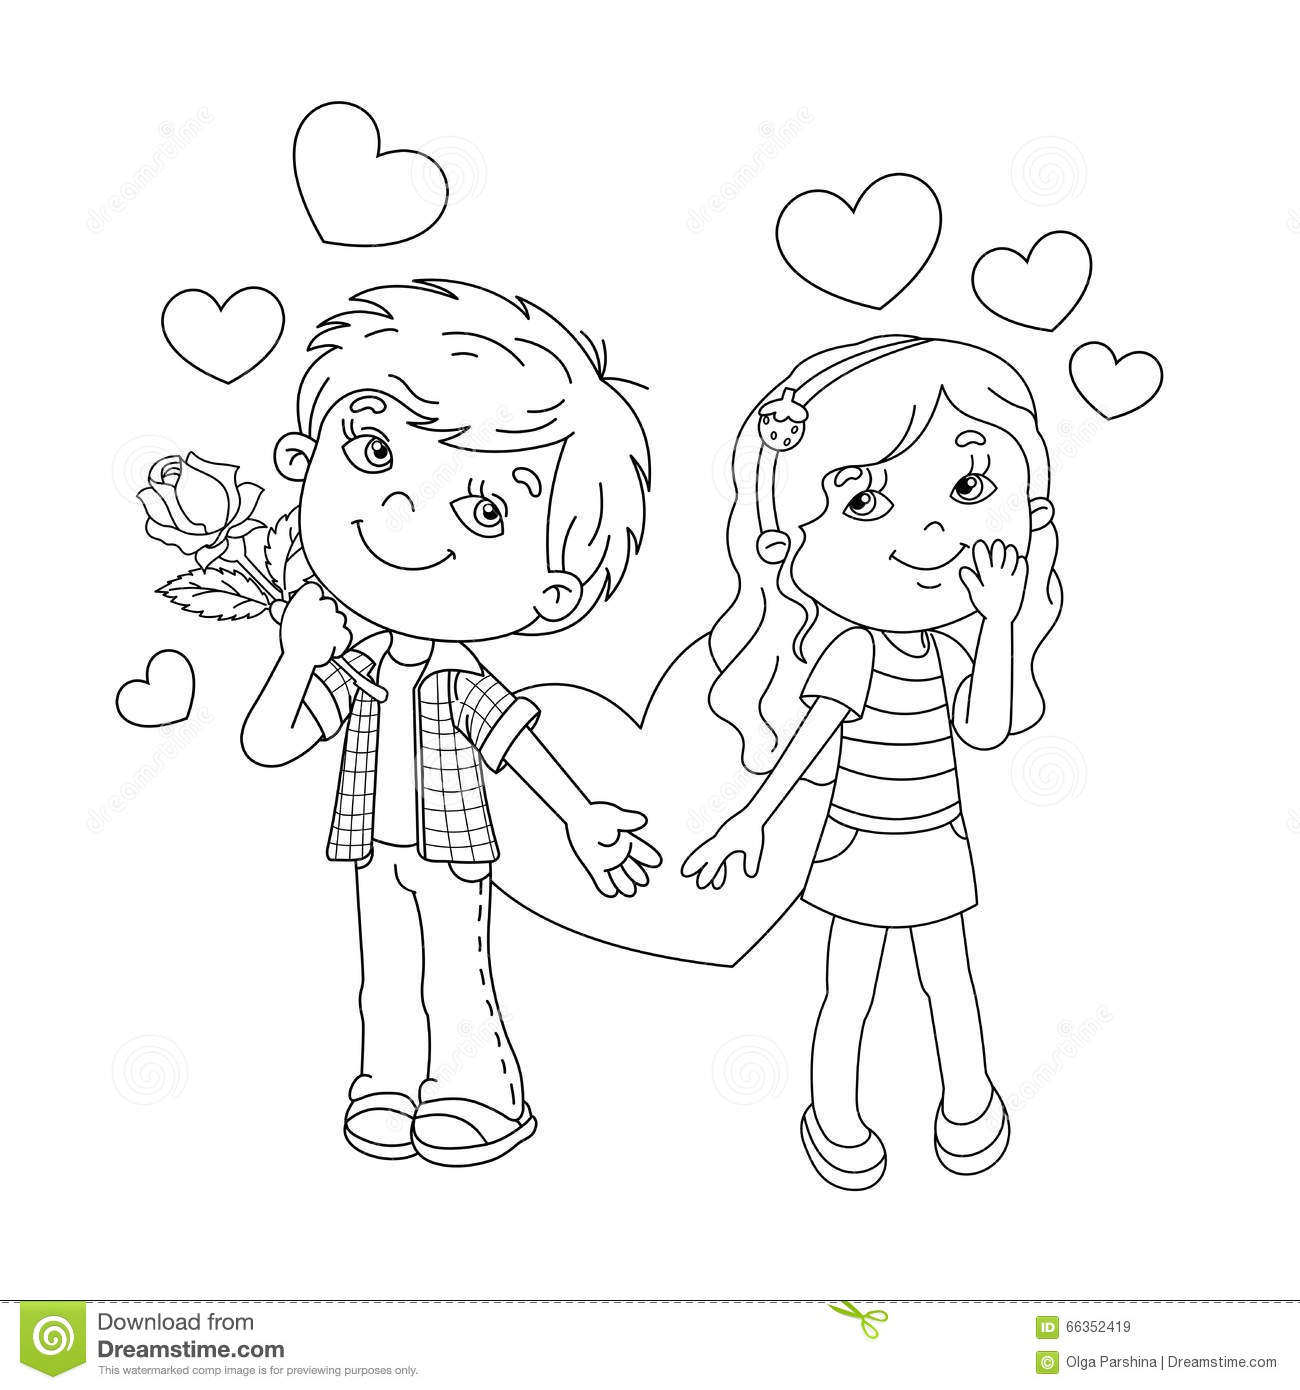 coloring page outline of boy and with hearts stock vector